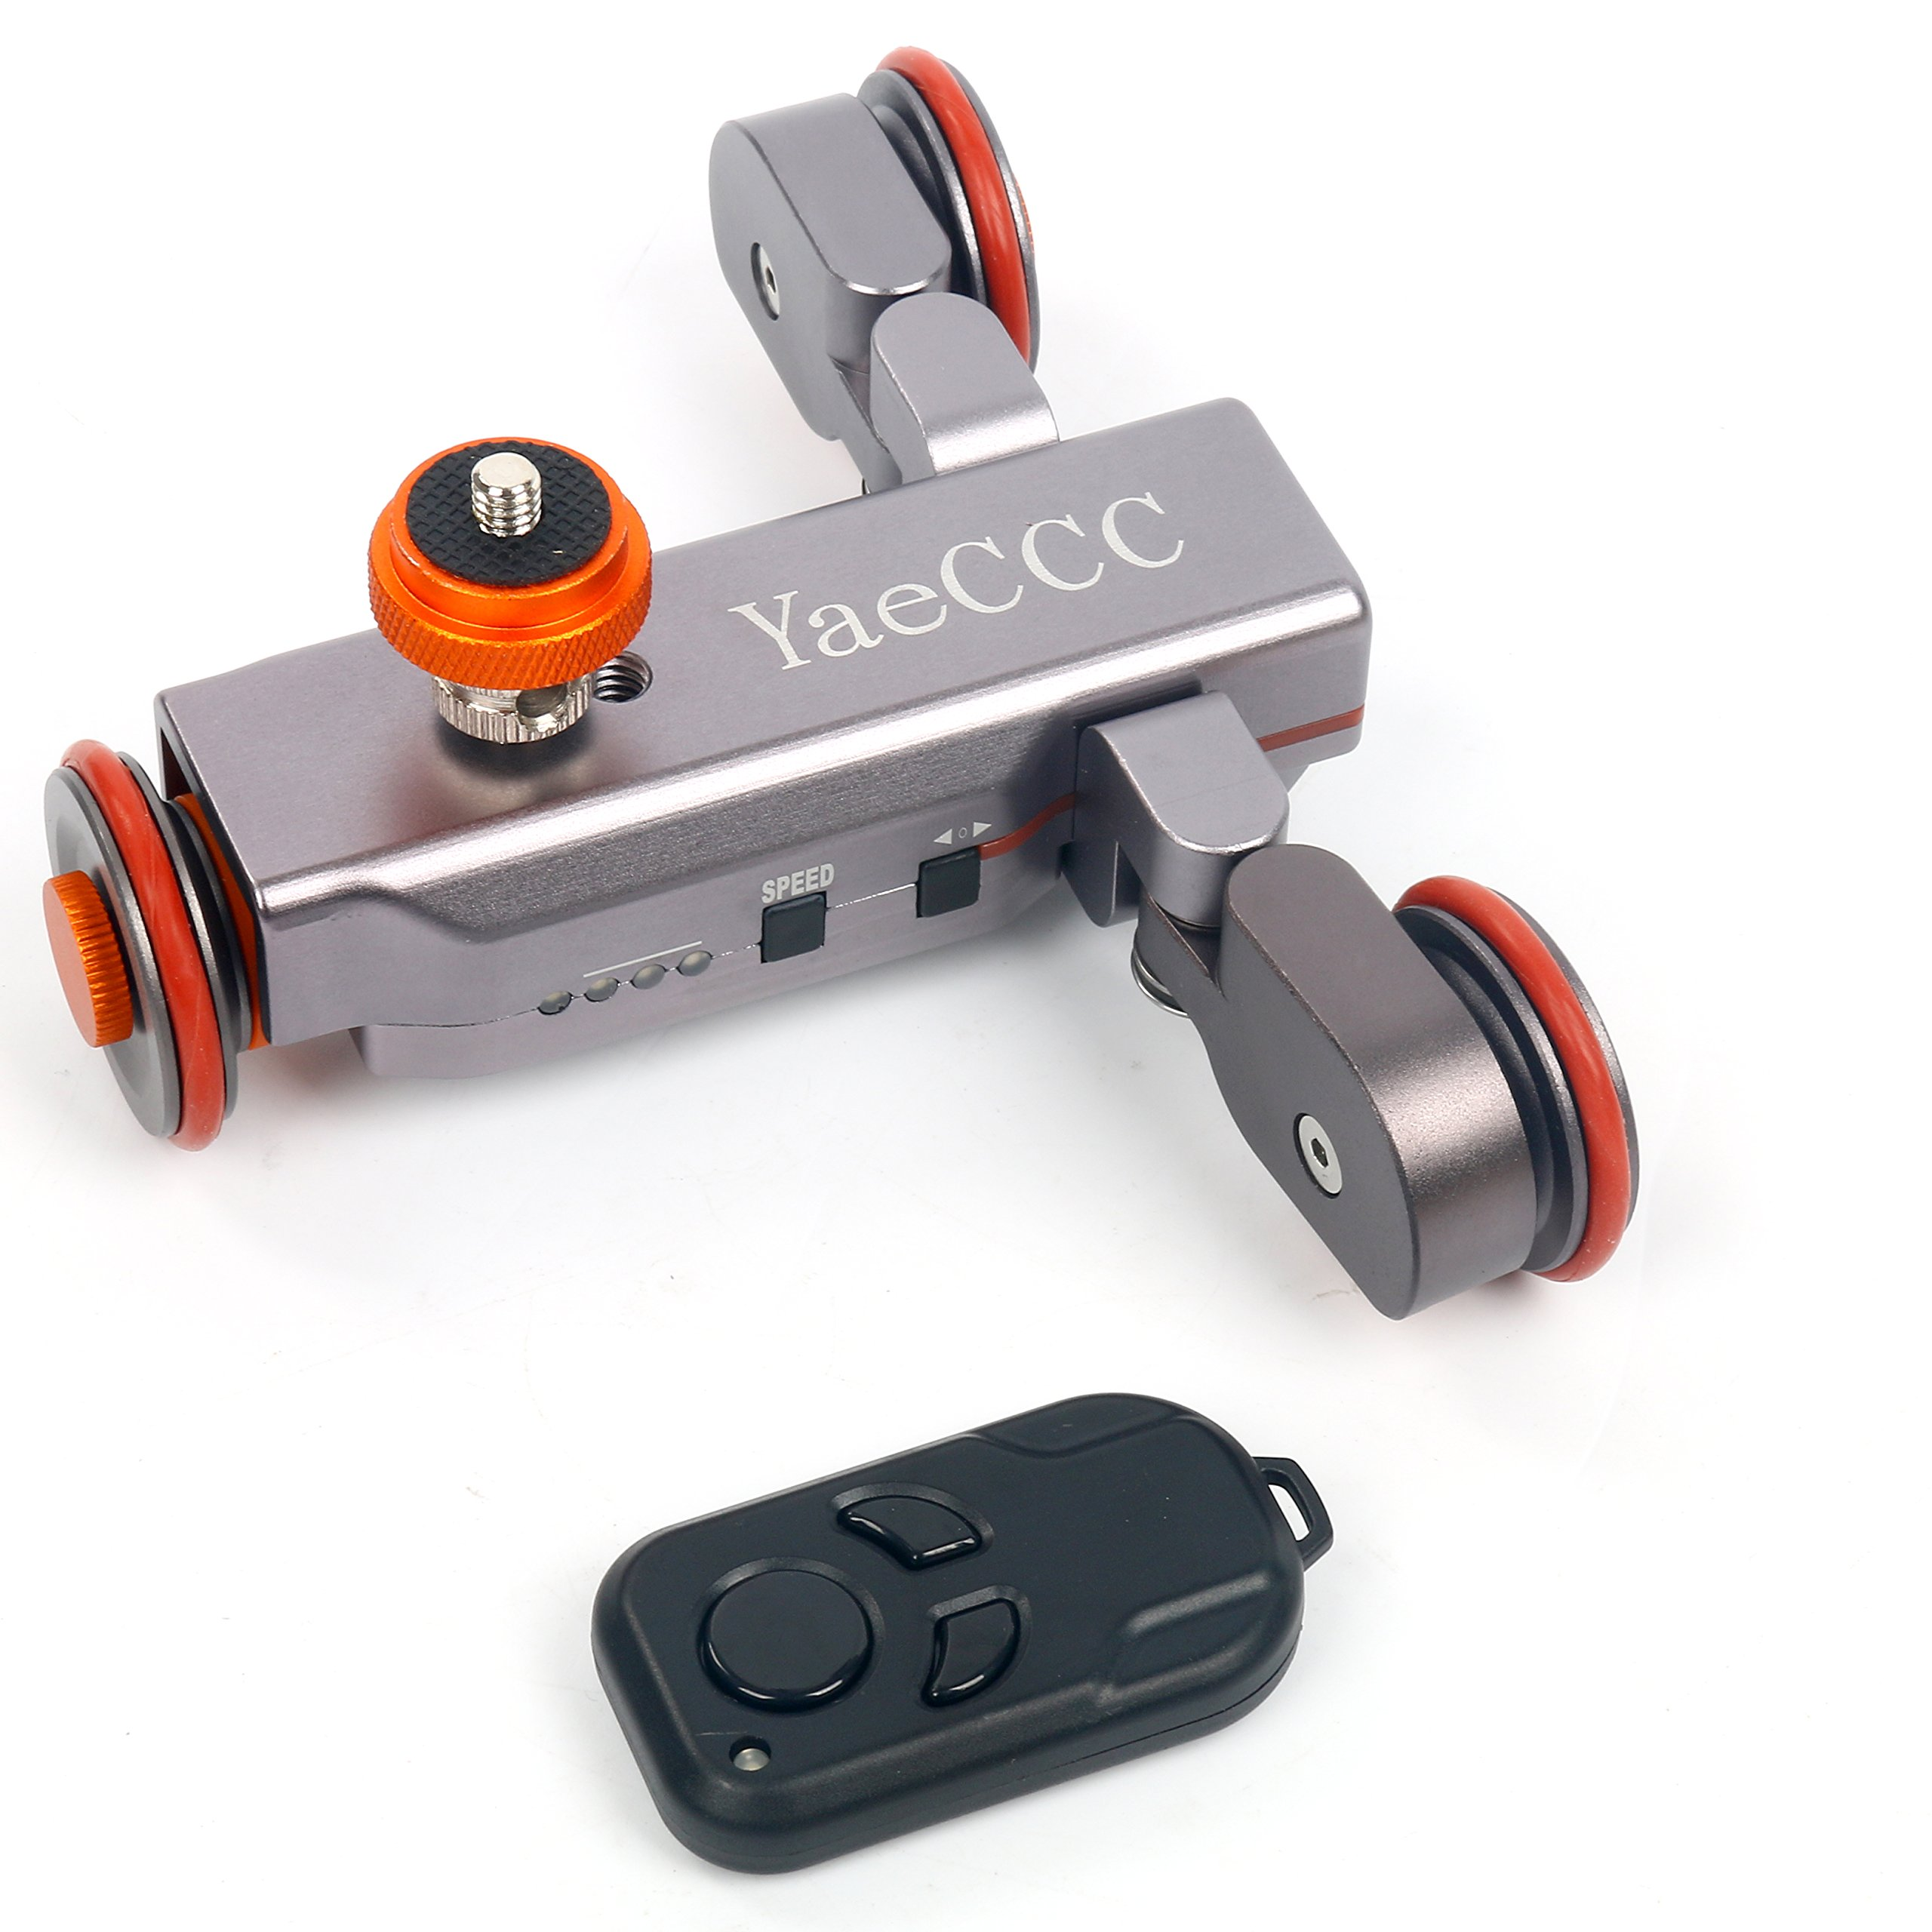 Autodolly Pro II Motorized Electric Track Slider Dolly Car 3-Wheel Video Pulley Rolling Skater for DSLR Camera